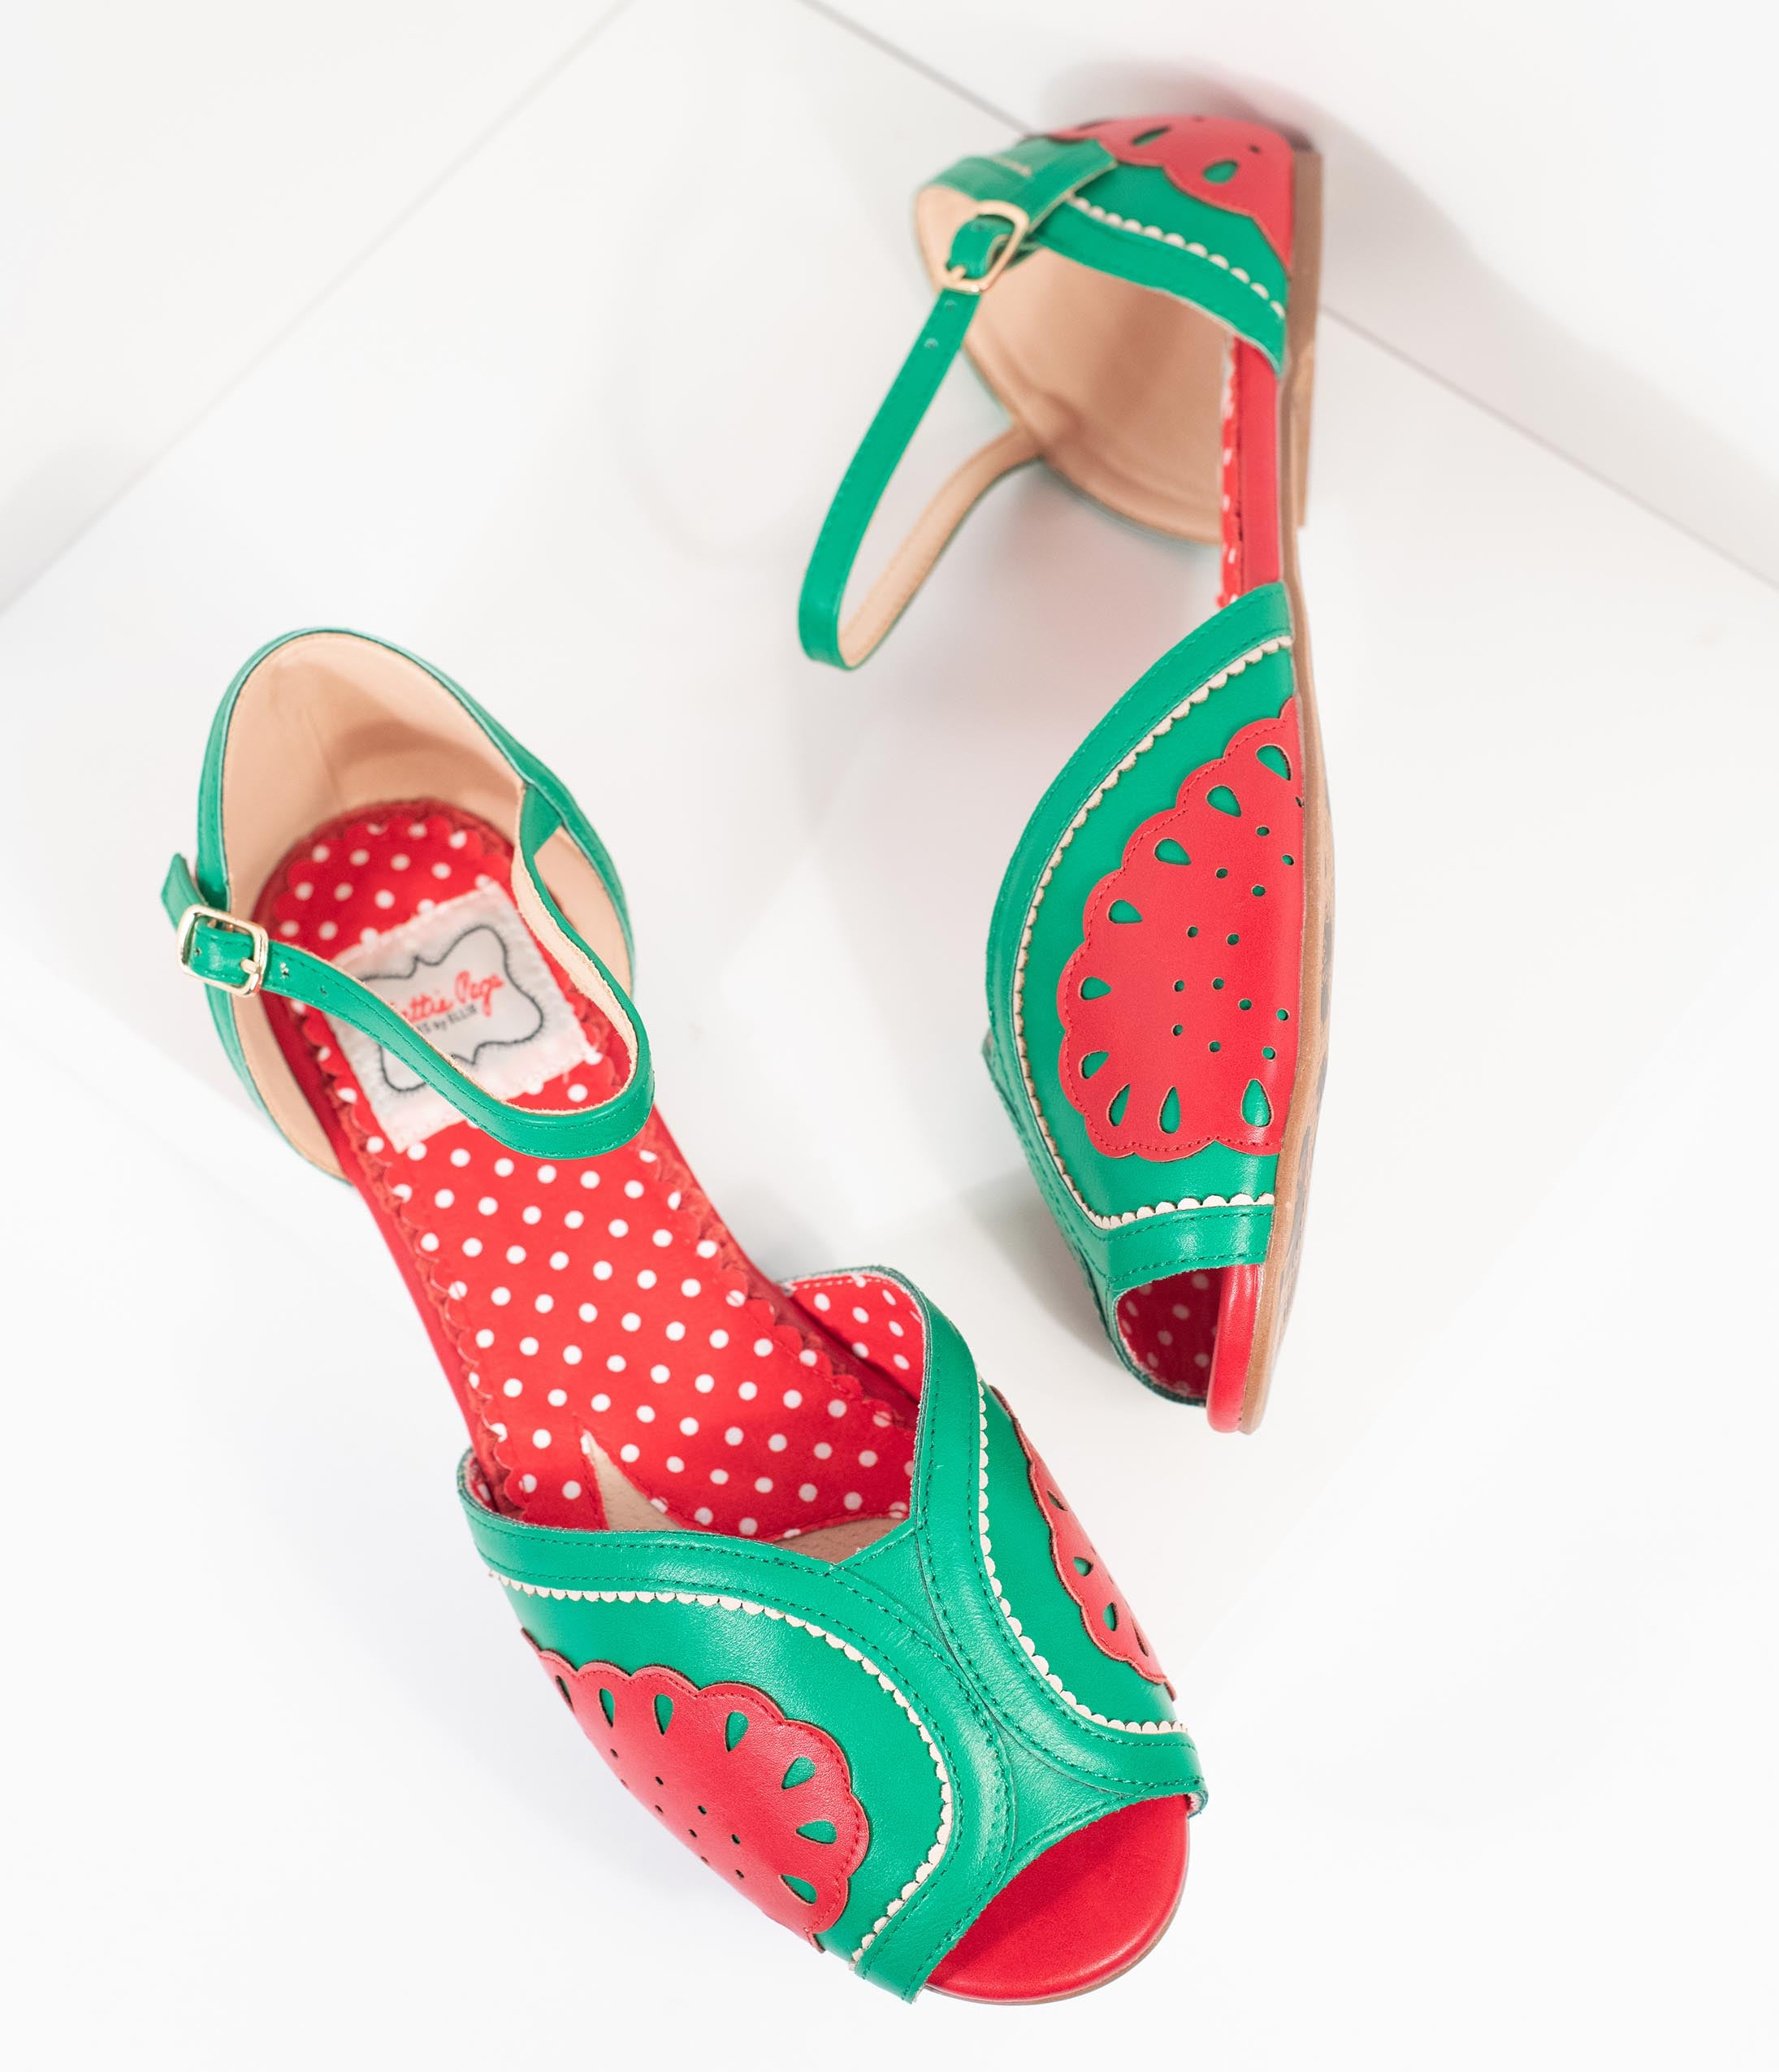 1950s Style Shoes | Heels, Flats, Saddle Shoes Bettie Page Red  Green Leatherette Peep Toe FruitieWatermelon Sandals $78.00 AT vintagedancer.com